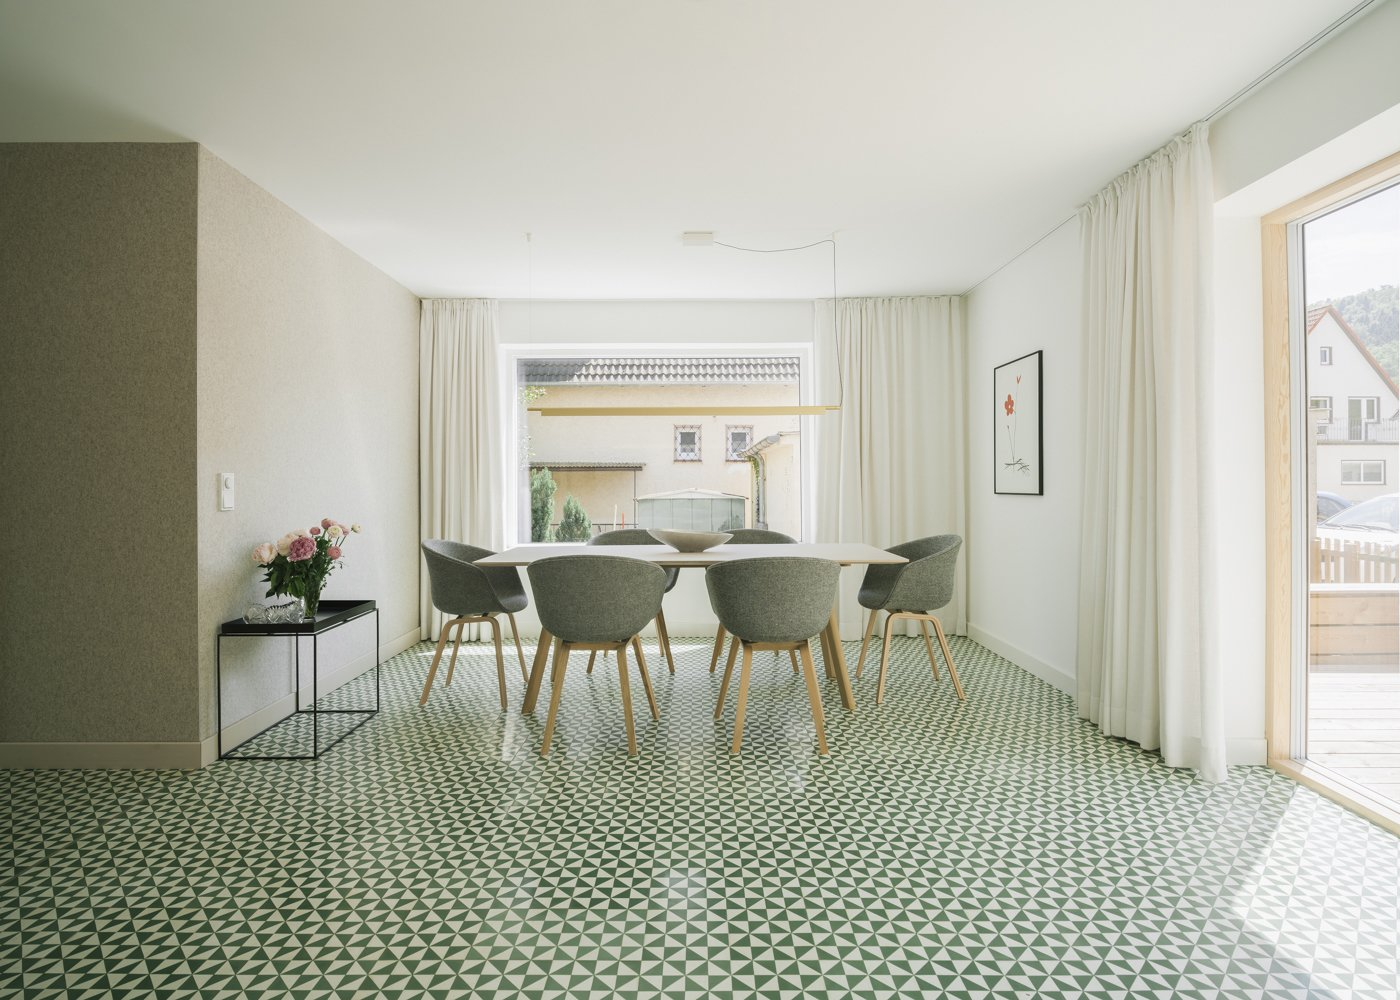 Dining Room, Chair, Table, Lamps, Pendant Lighting, and Cement Tile Floor dining table  Haus Mai by Project Architecture Company